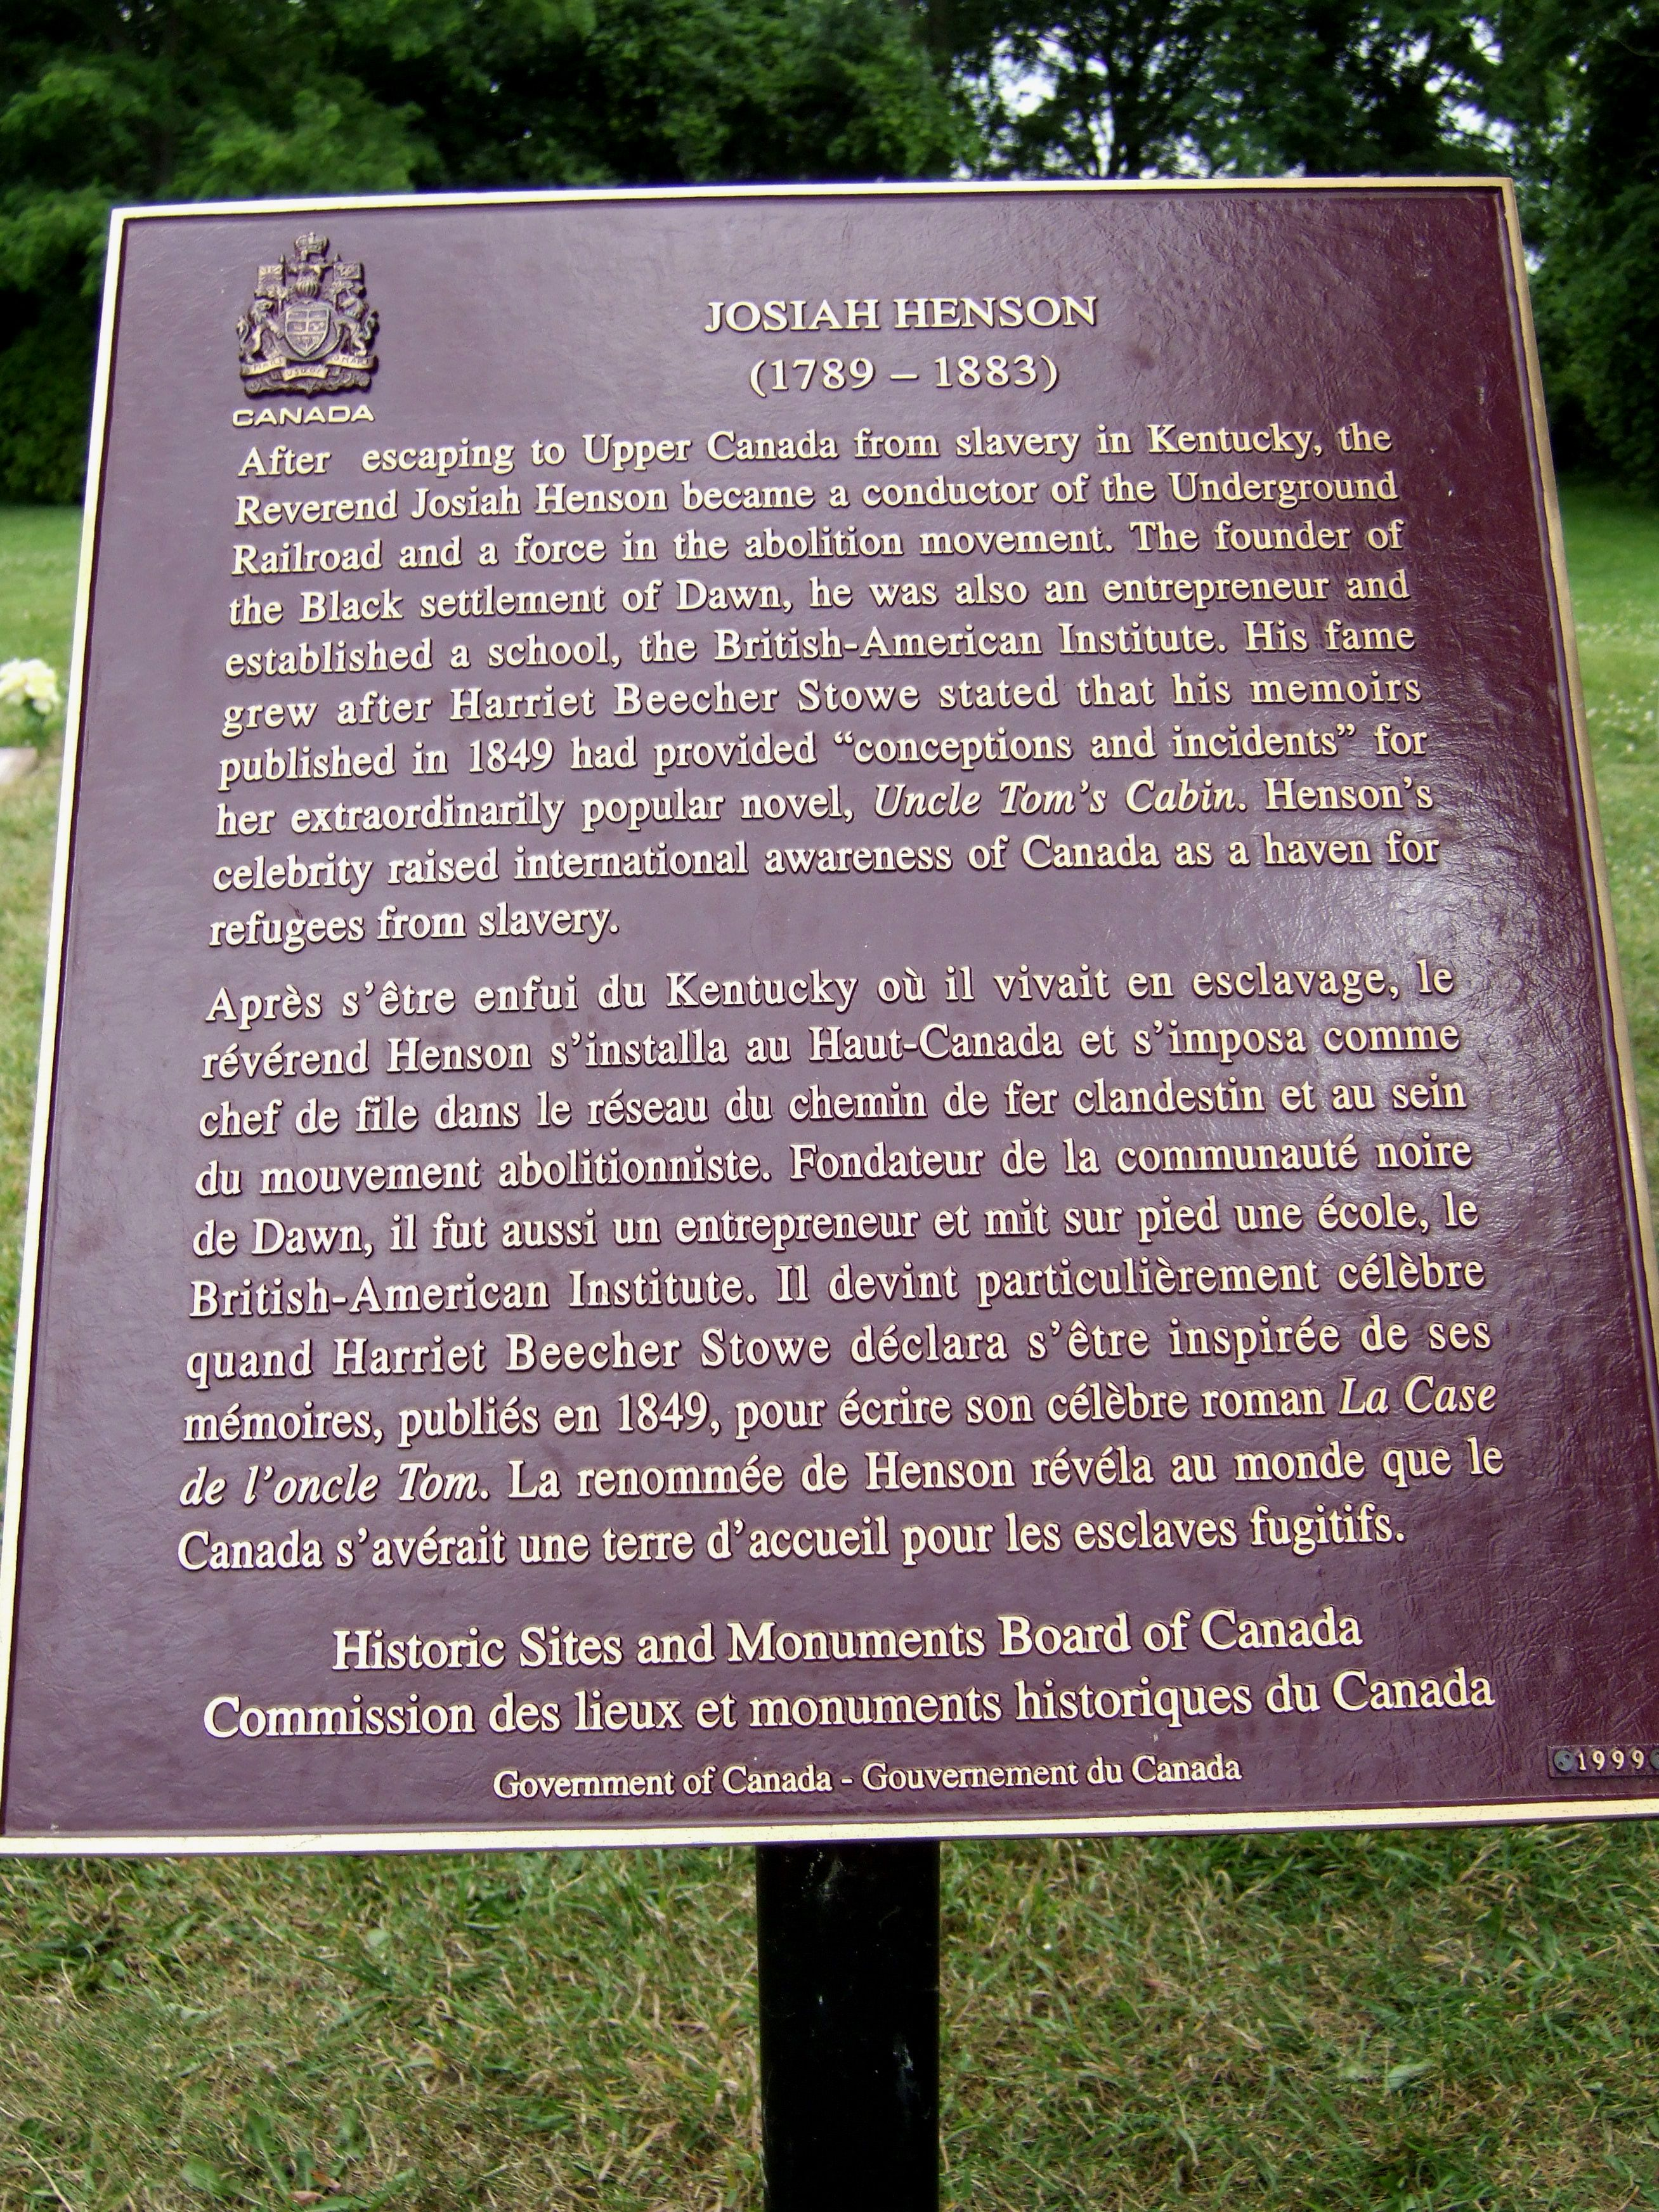 Josiah Henson Memorial Plaque at Henson Family Cemetery, Chatham-Kent Municipality, Ontario